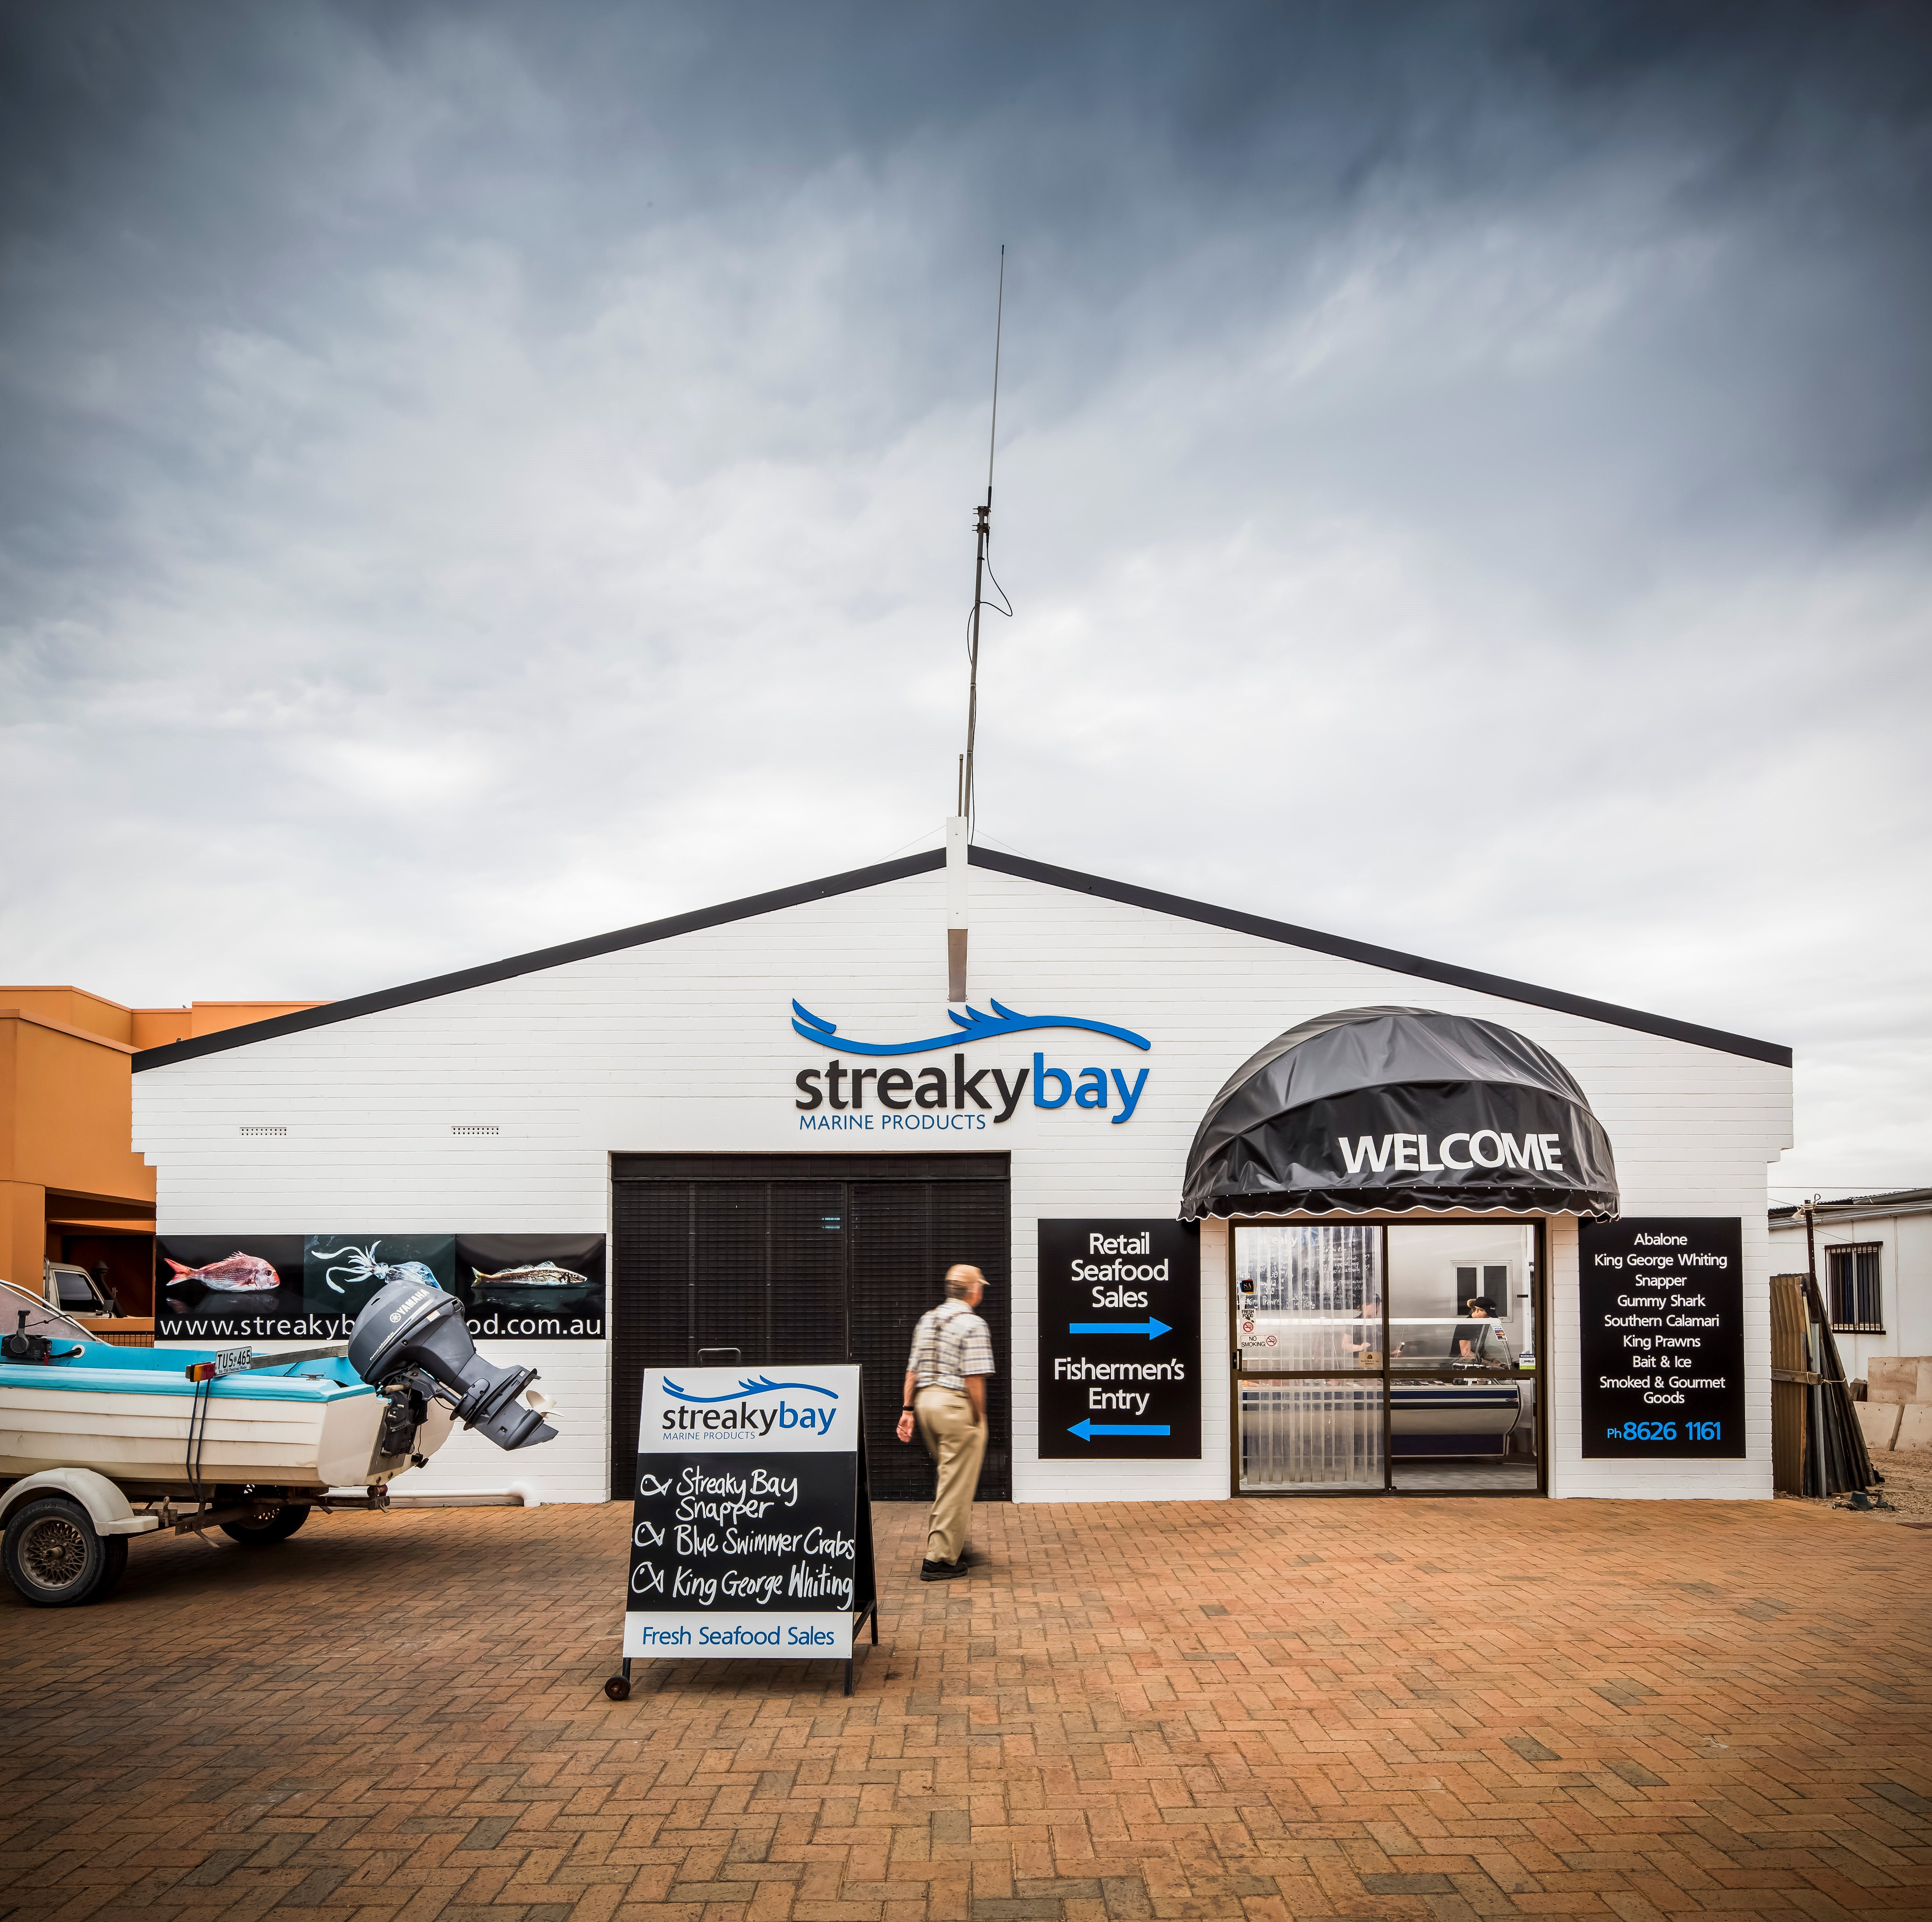 Streaky Bay Marine Products - Accommodation Adelaide